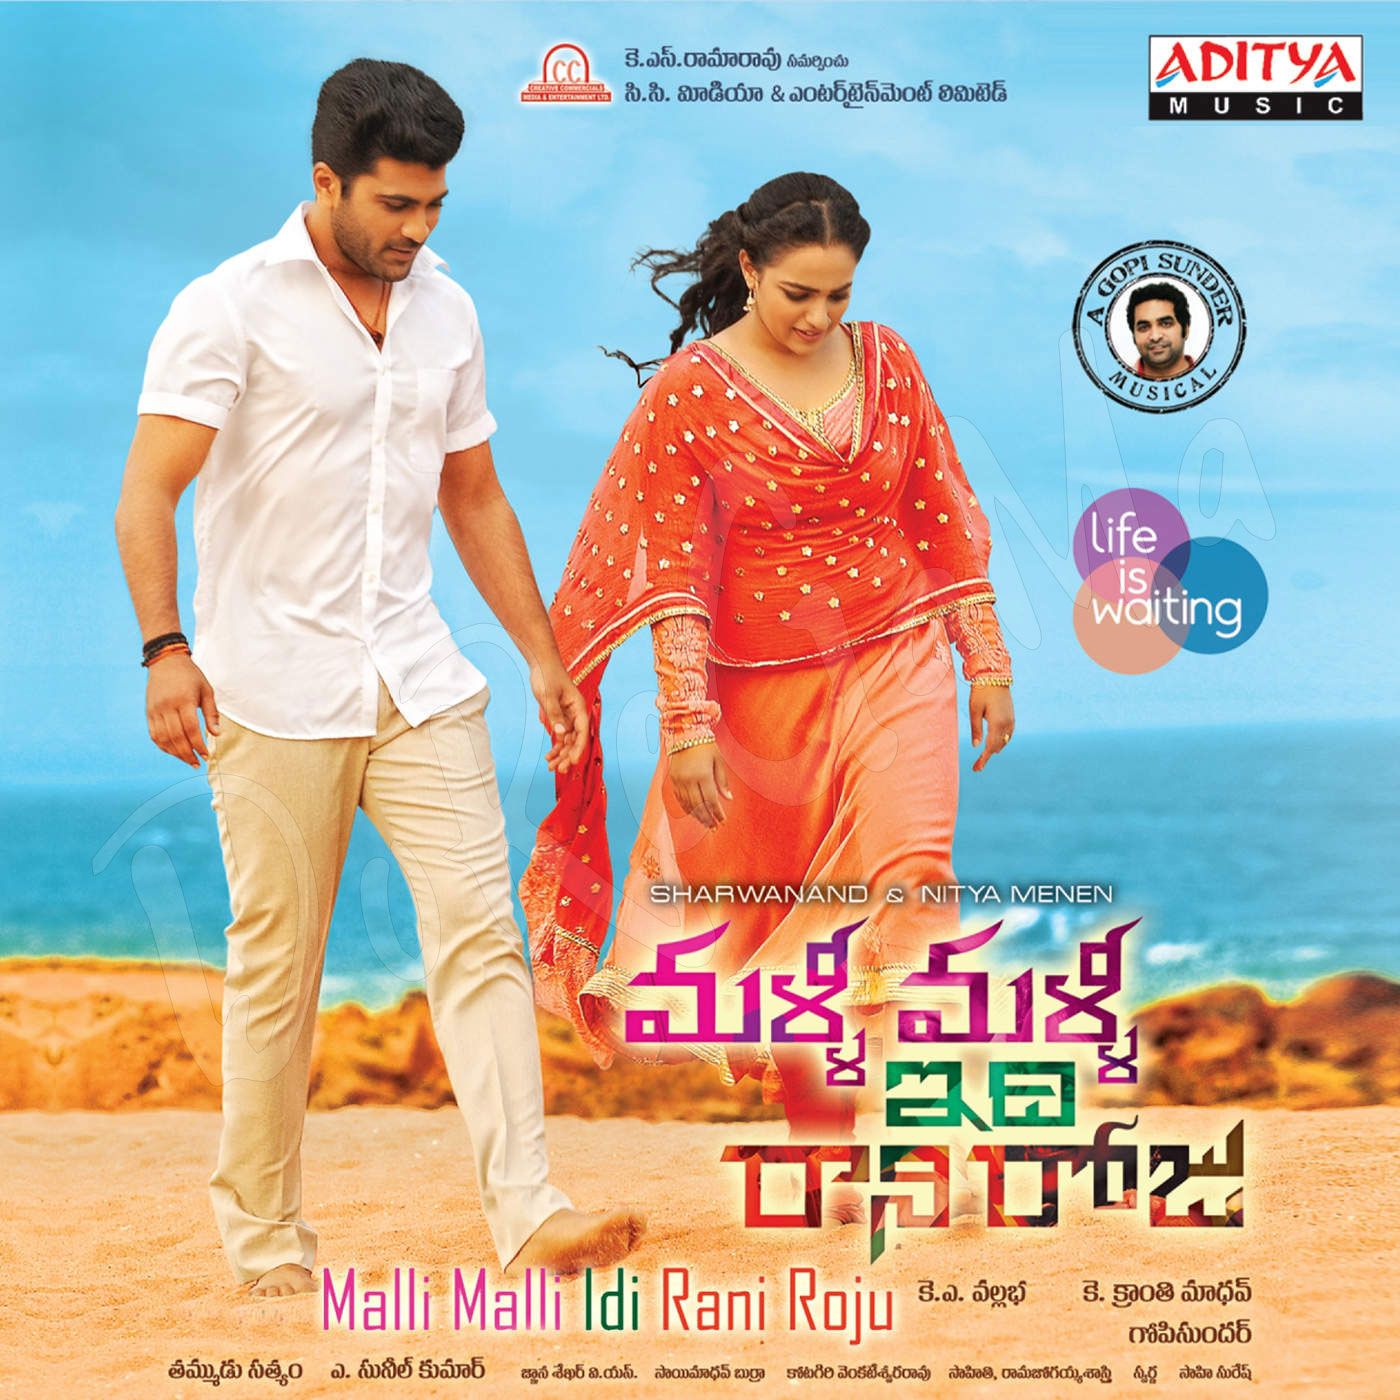 Malli-Malli-Idi-Rani-Roju-2014-Original-CD-Front-Cover-Poster-wallpaper-HD